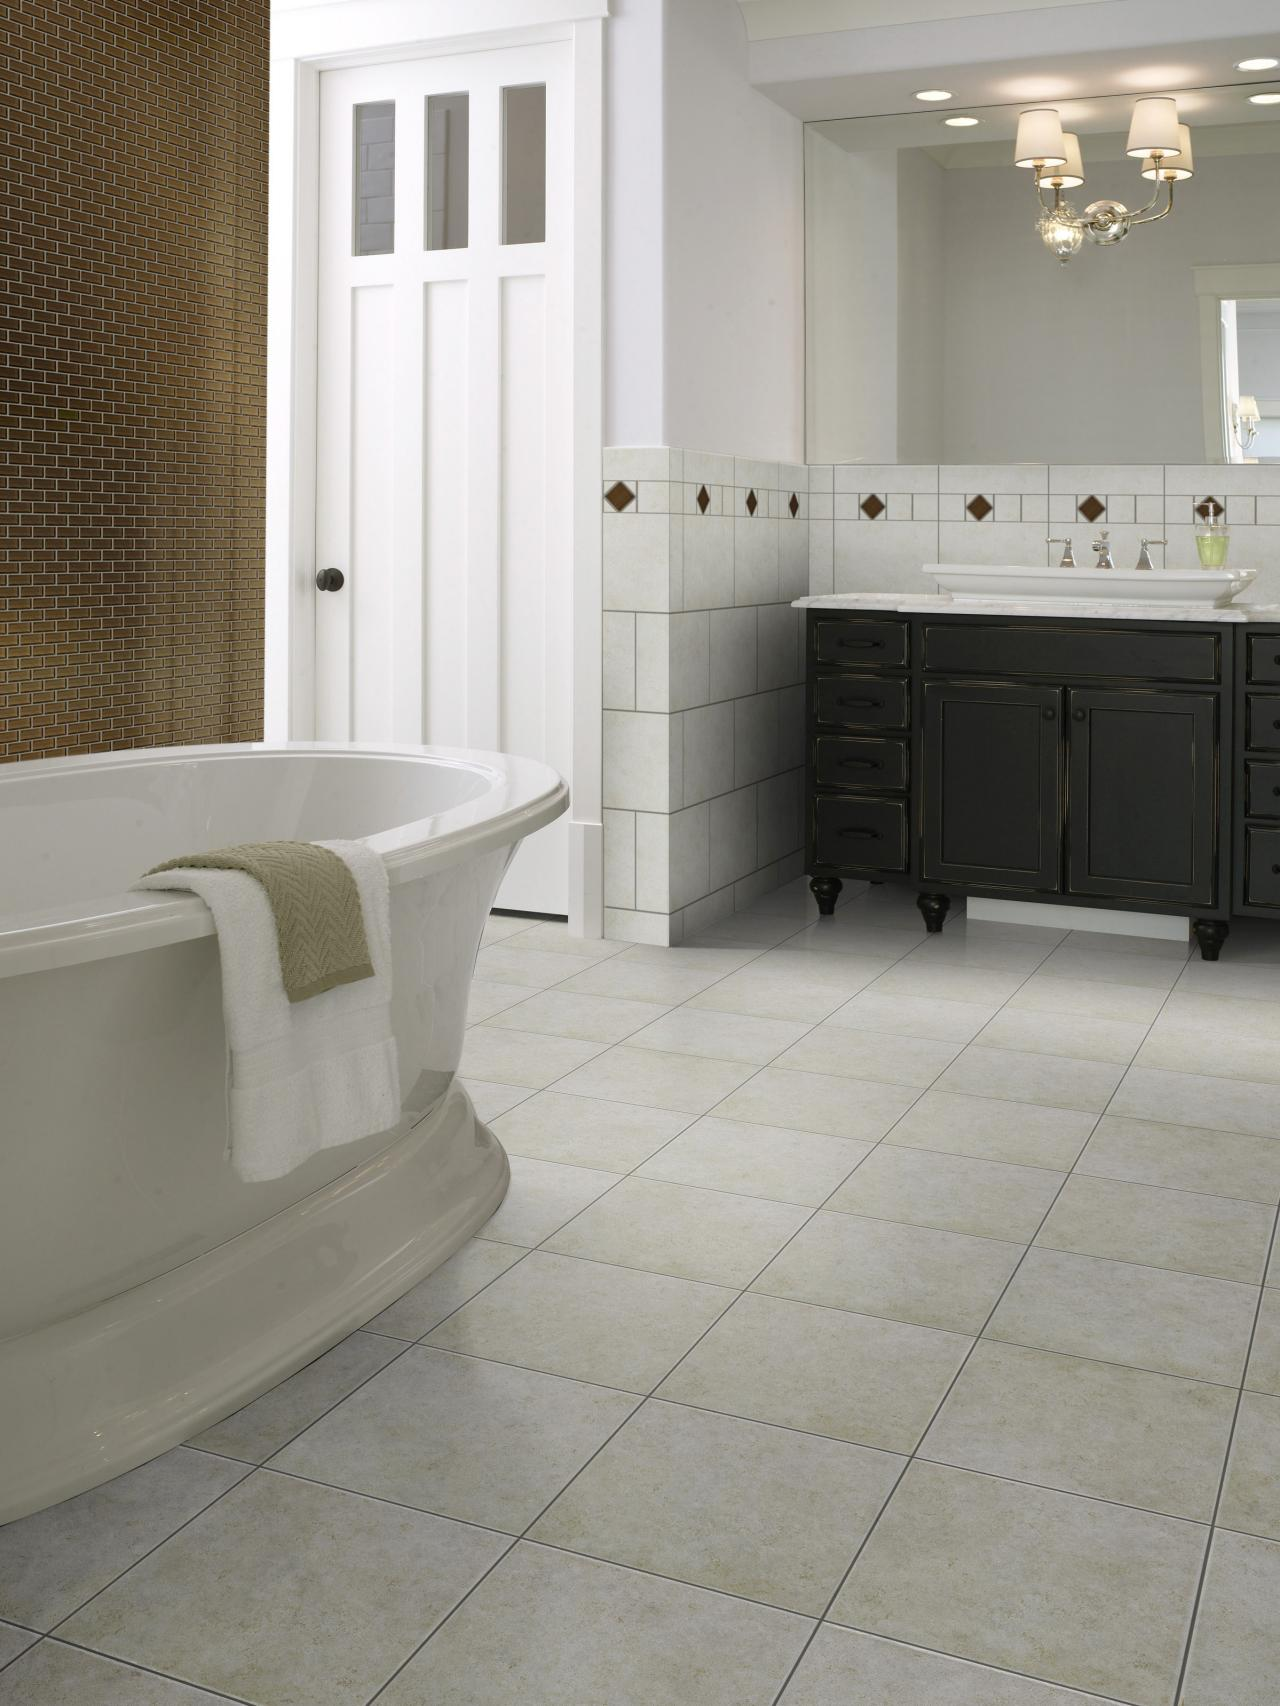 Decorative bathroom tile - Tiling A Bathroom Floor In Addition To Bathroom